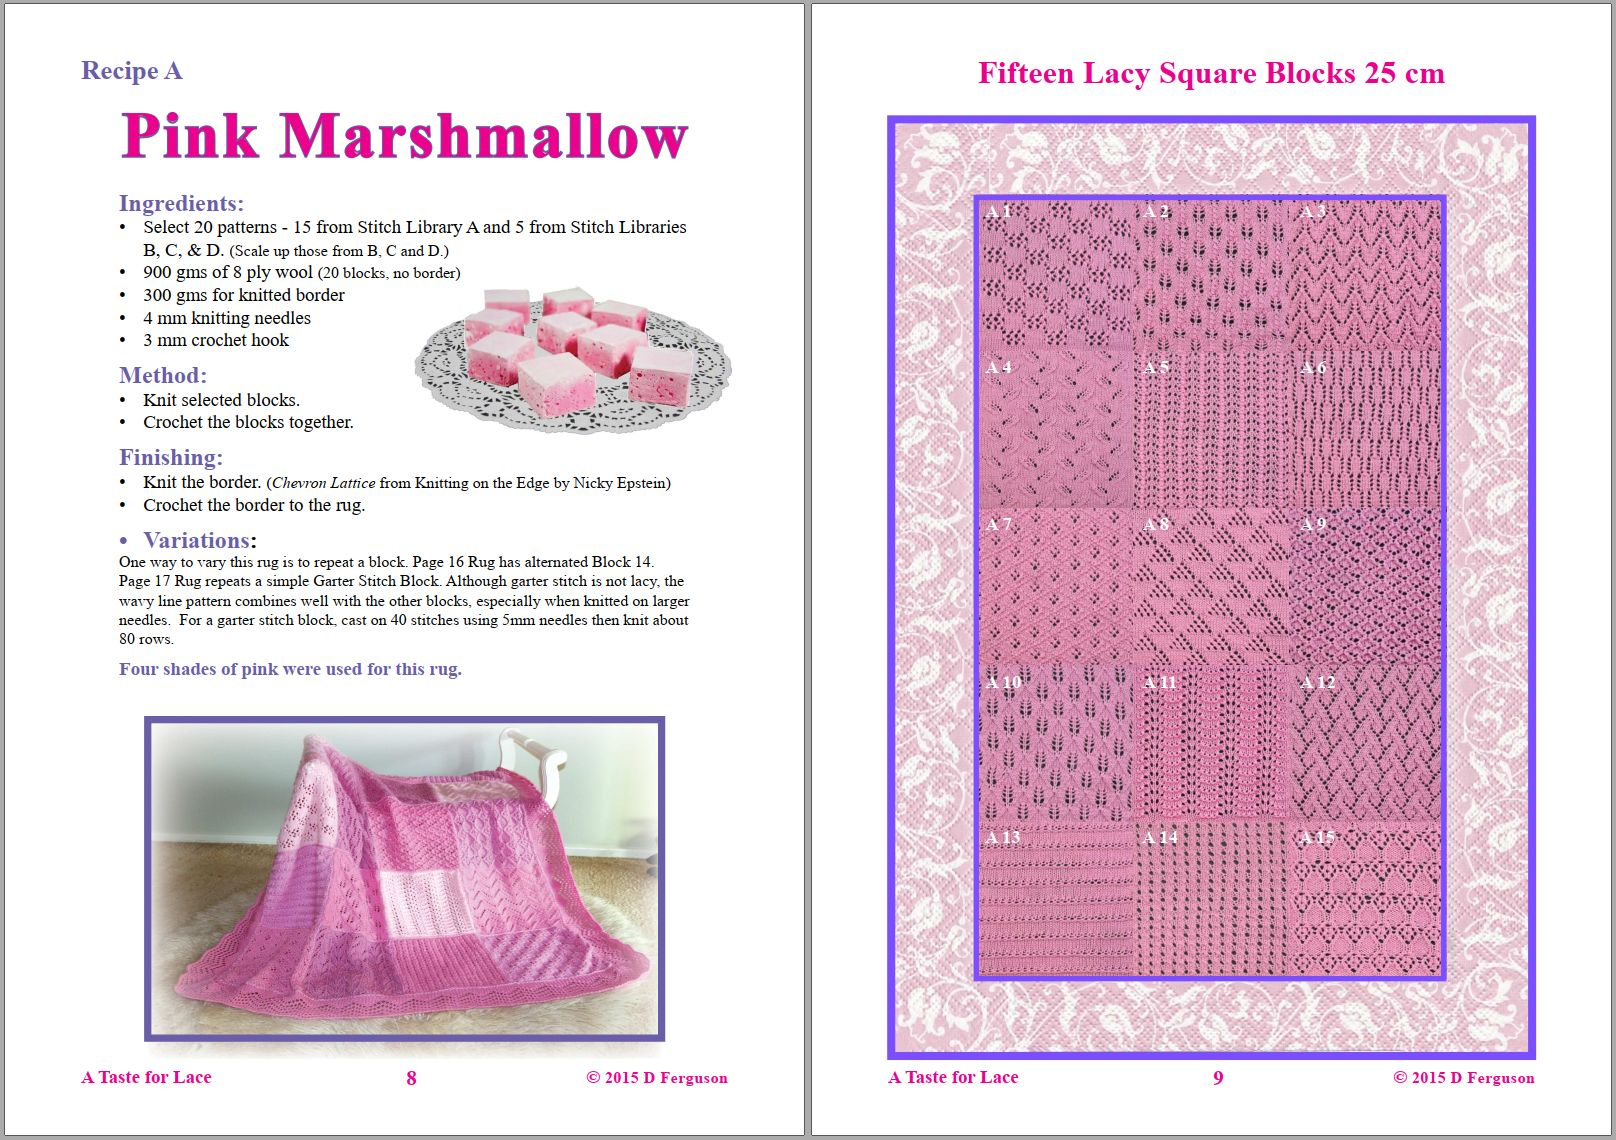 Sip Knit Yarn rug and blanket knitting lace pattern book. Pages 8 and 9.